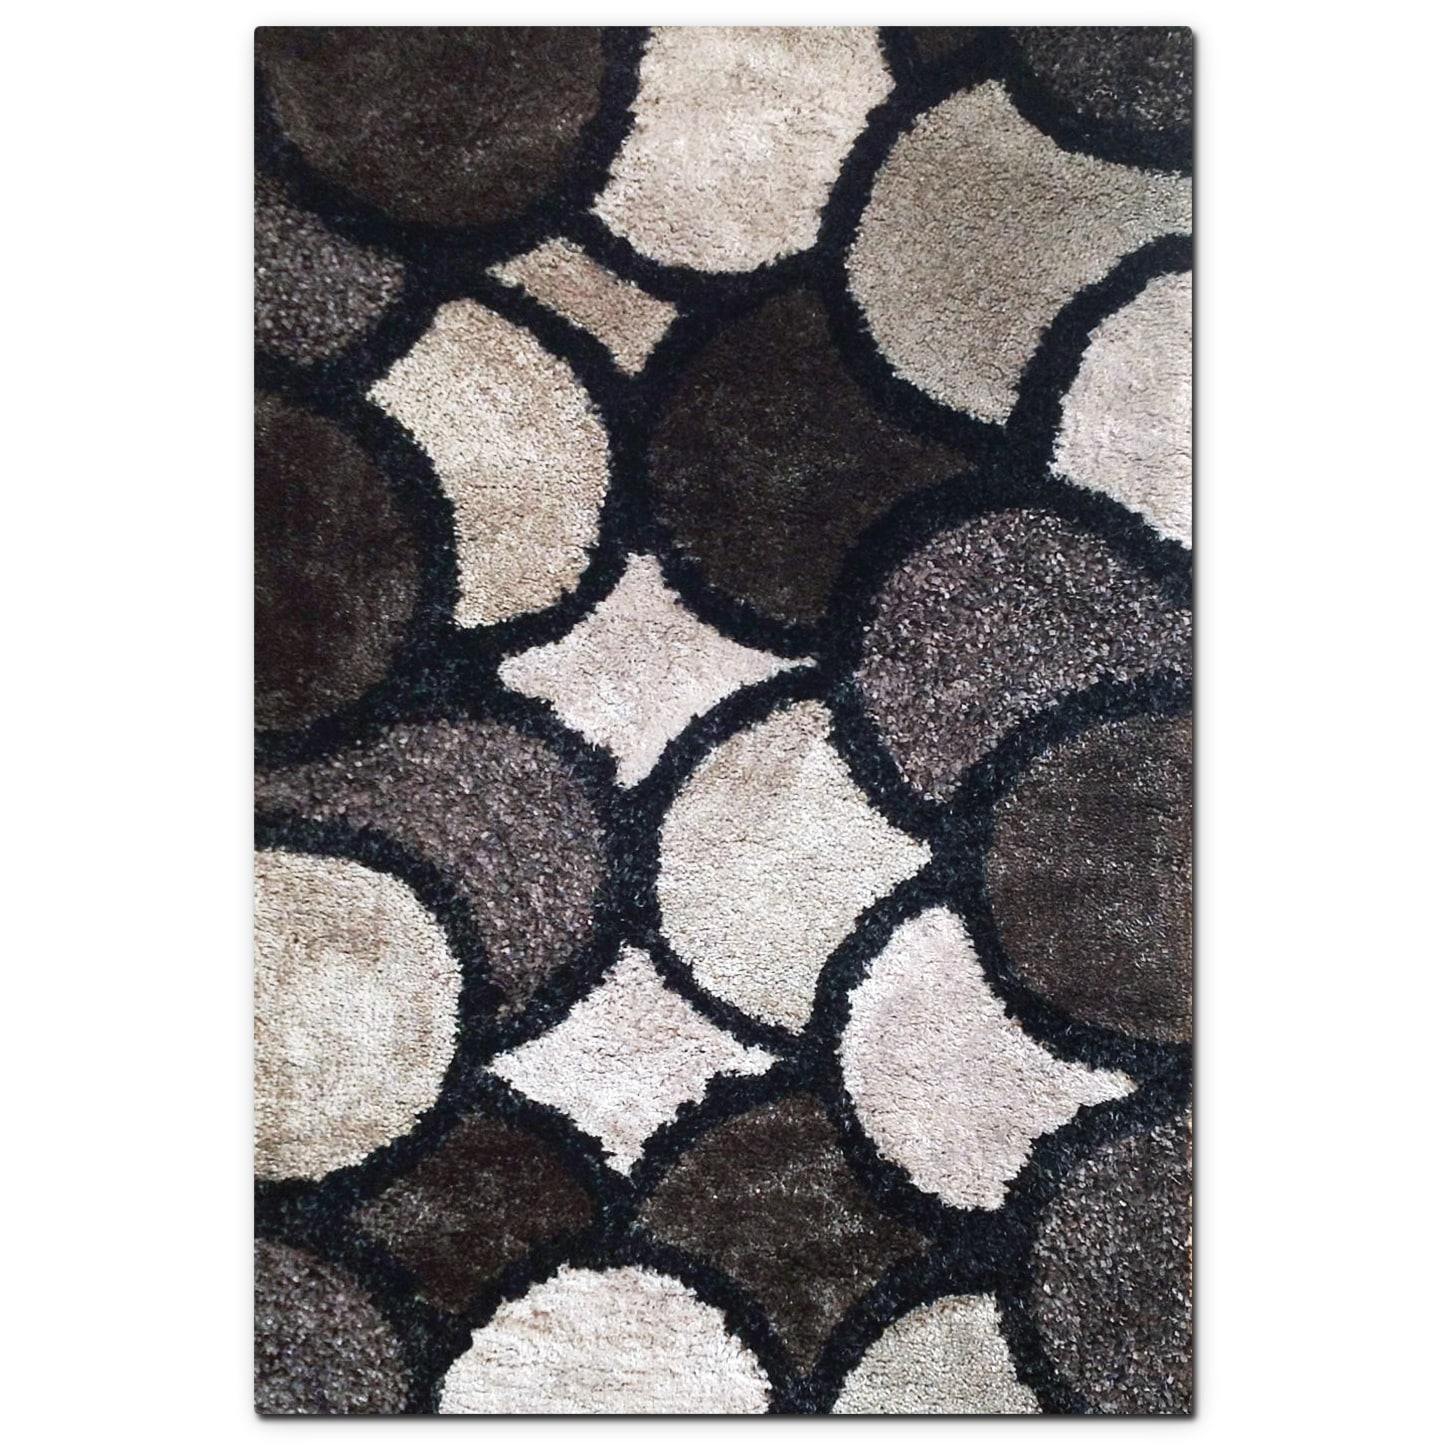 Lifestyle Disco Area Rug (5' x 8')